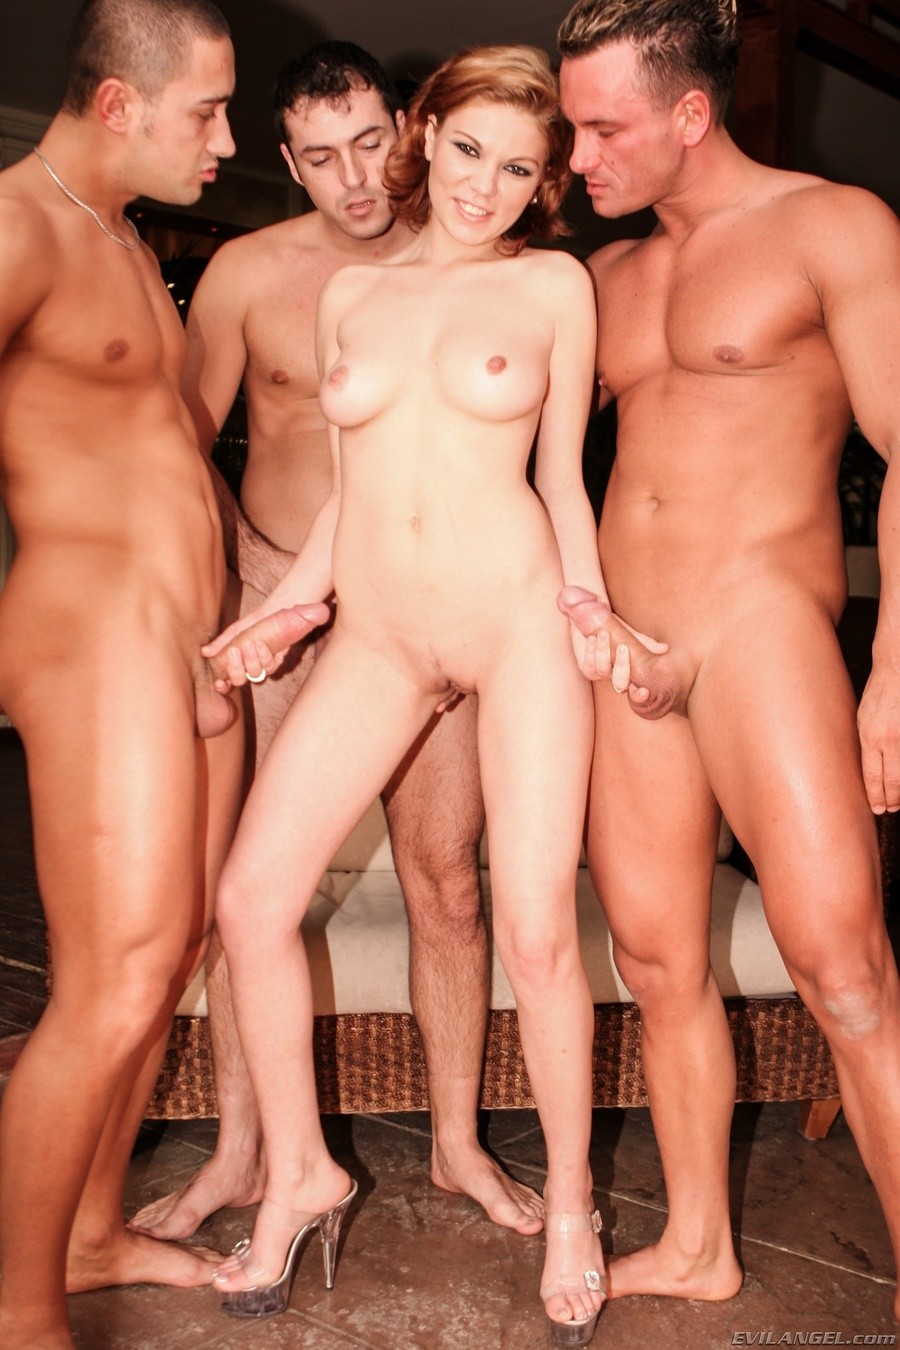 girl sex slaves nude